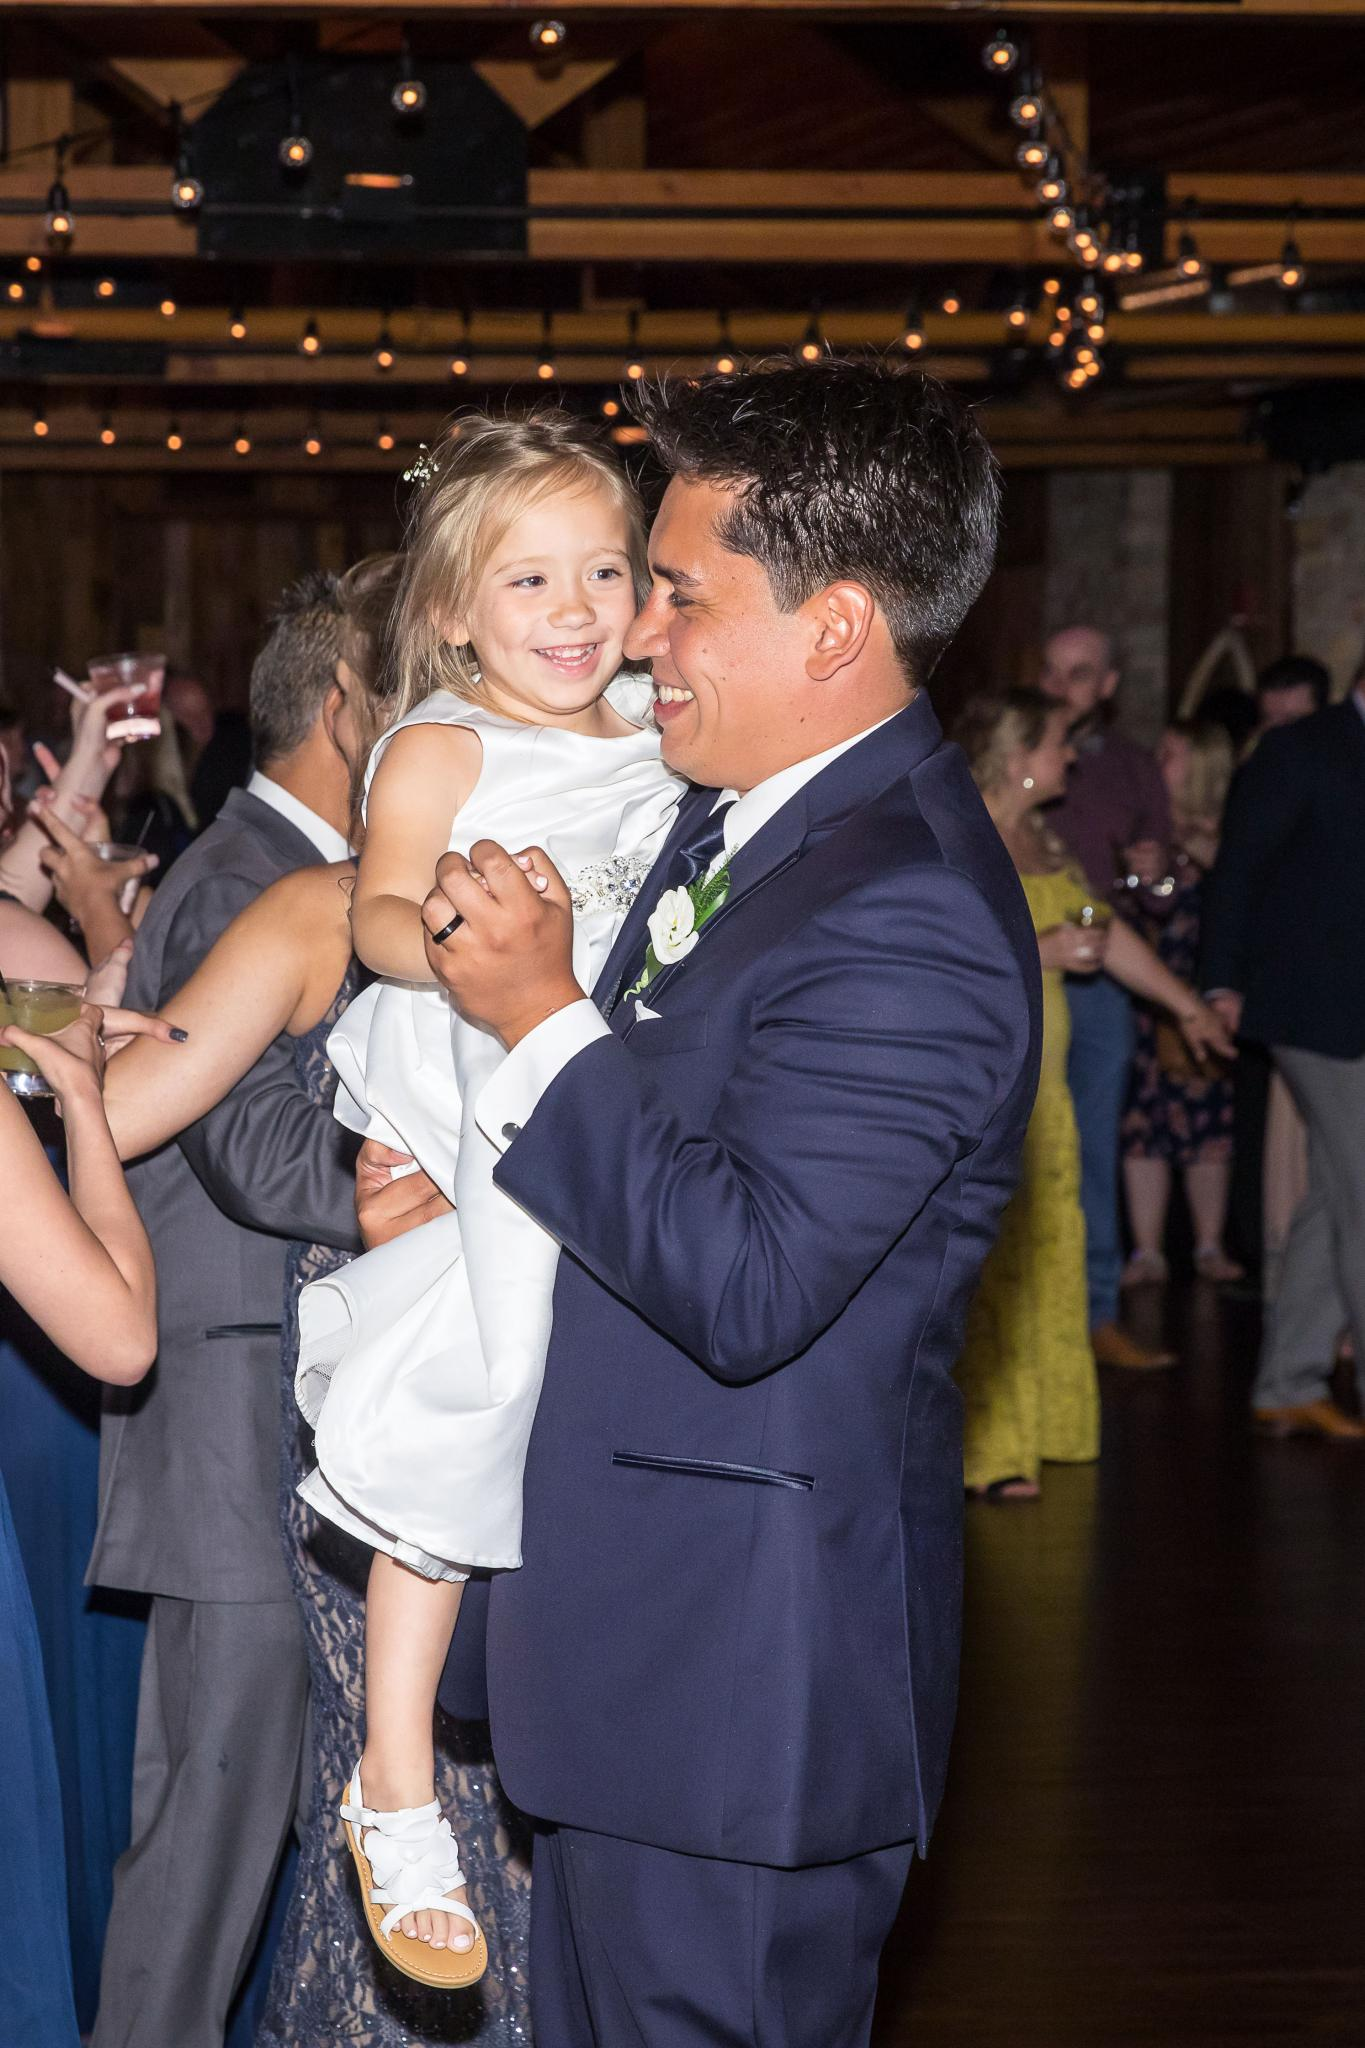 lindsay demetrius fisherman's inn chicago il wedding father walking daughter down aisle